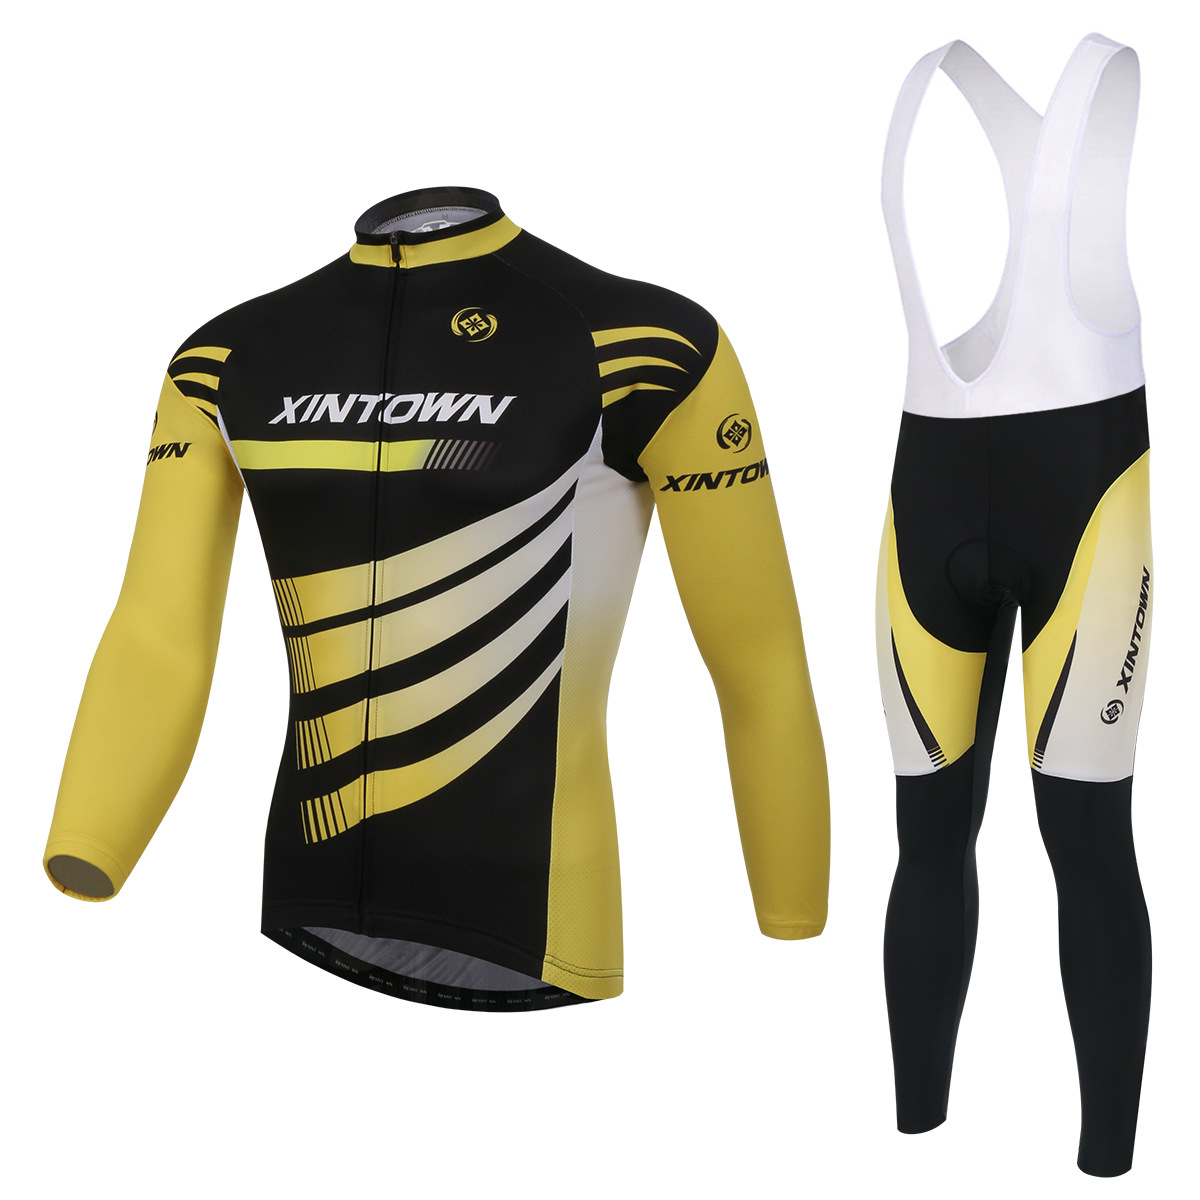 Cycling Set Long Sleeve Jersey and Bib Pants 3D Pad Pro Men Anti-sweat Yellow Black Ciclismo Bike Suit Bicicleta Riding Sets